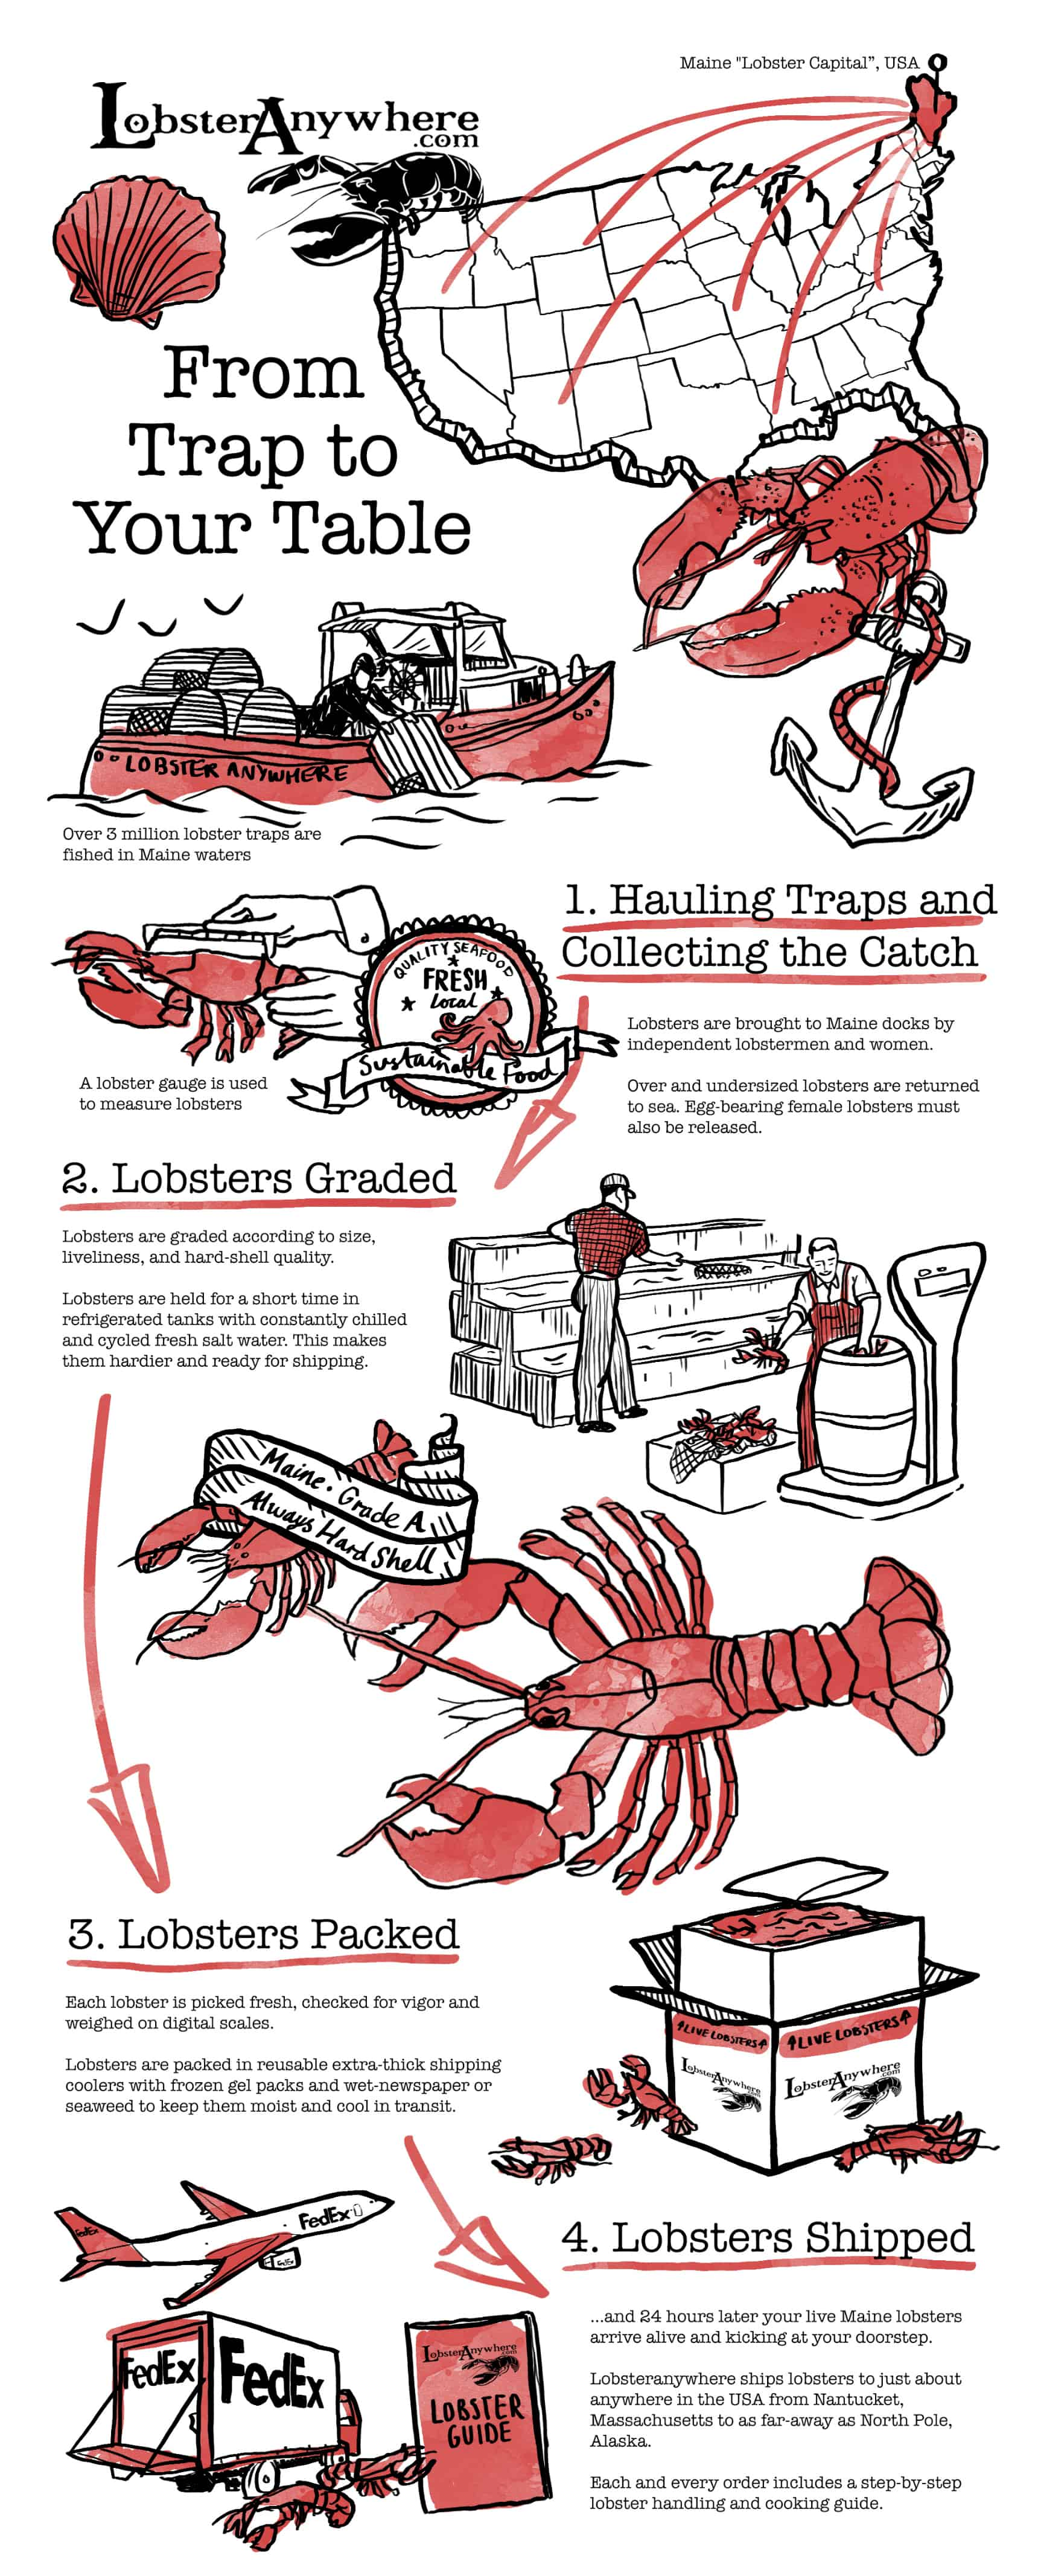 hight resolution of how lobsters are shipped